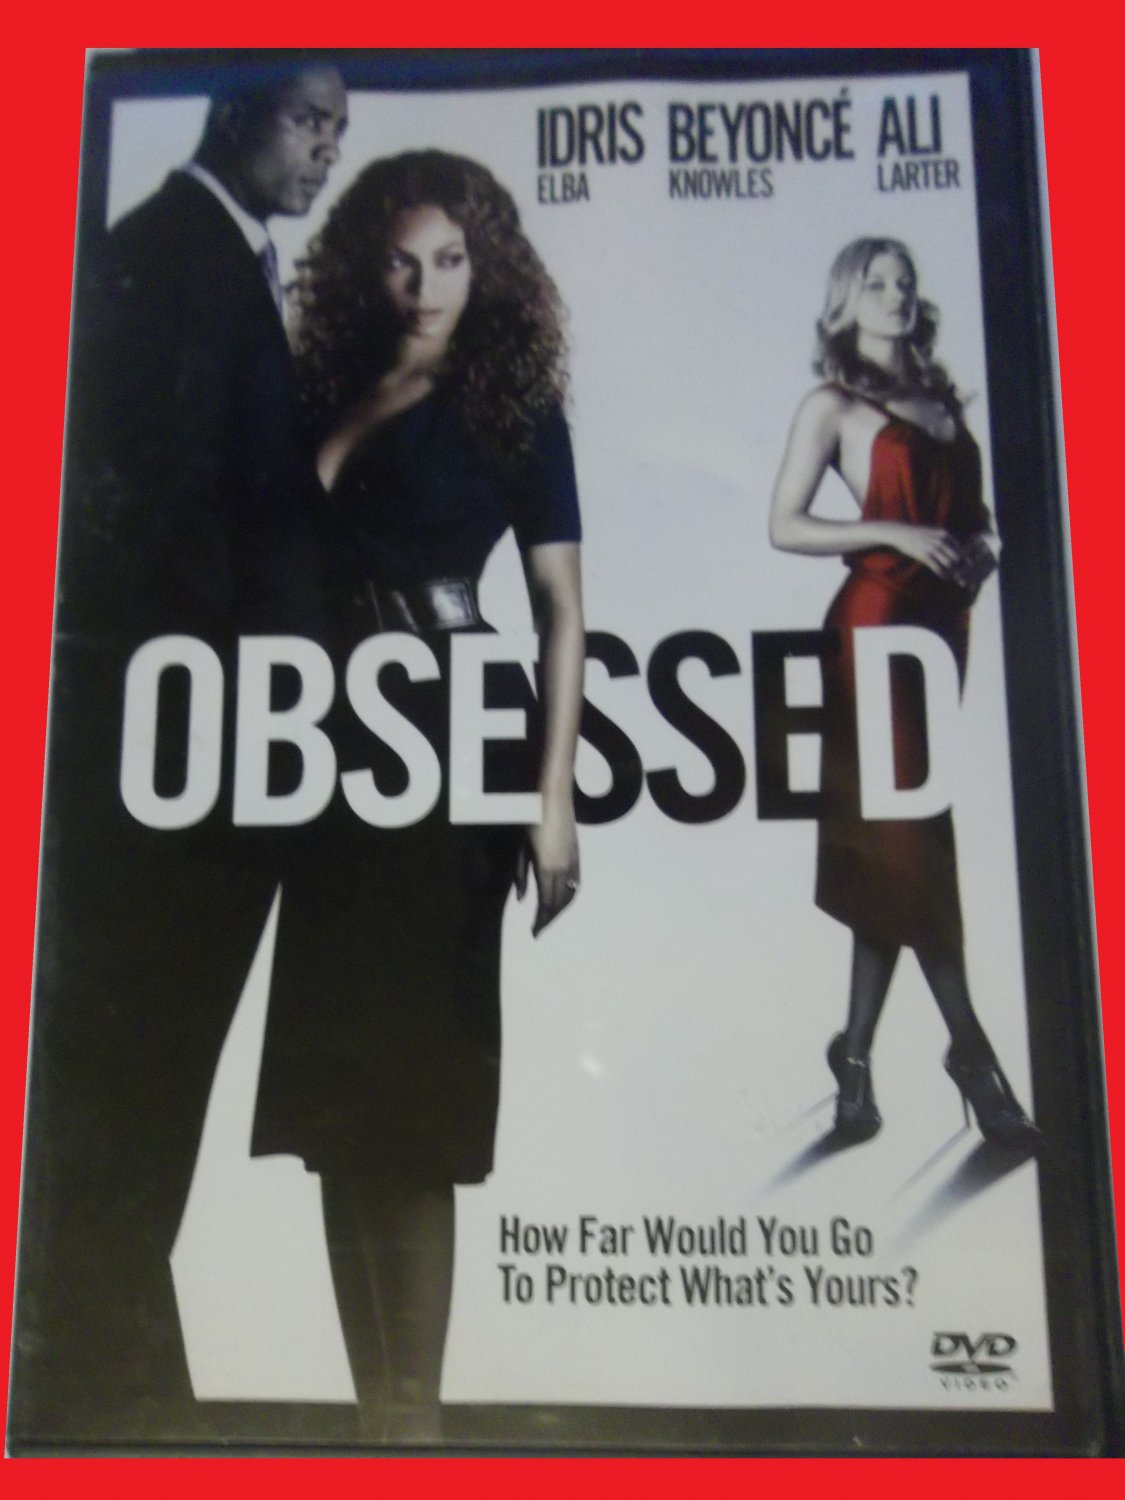 OBSESSED (FREE DVD, FAST SHIPPING!) BEYONCE KNOWLES (ROMANTIC DRAMA/THRILLER)